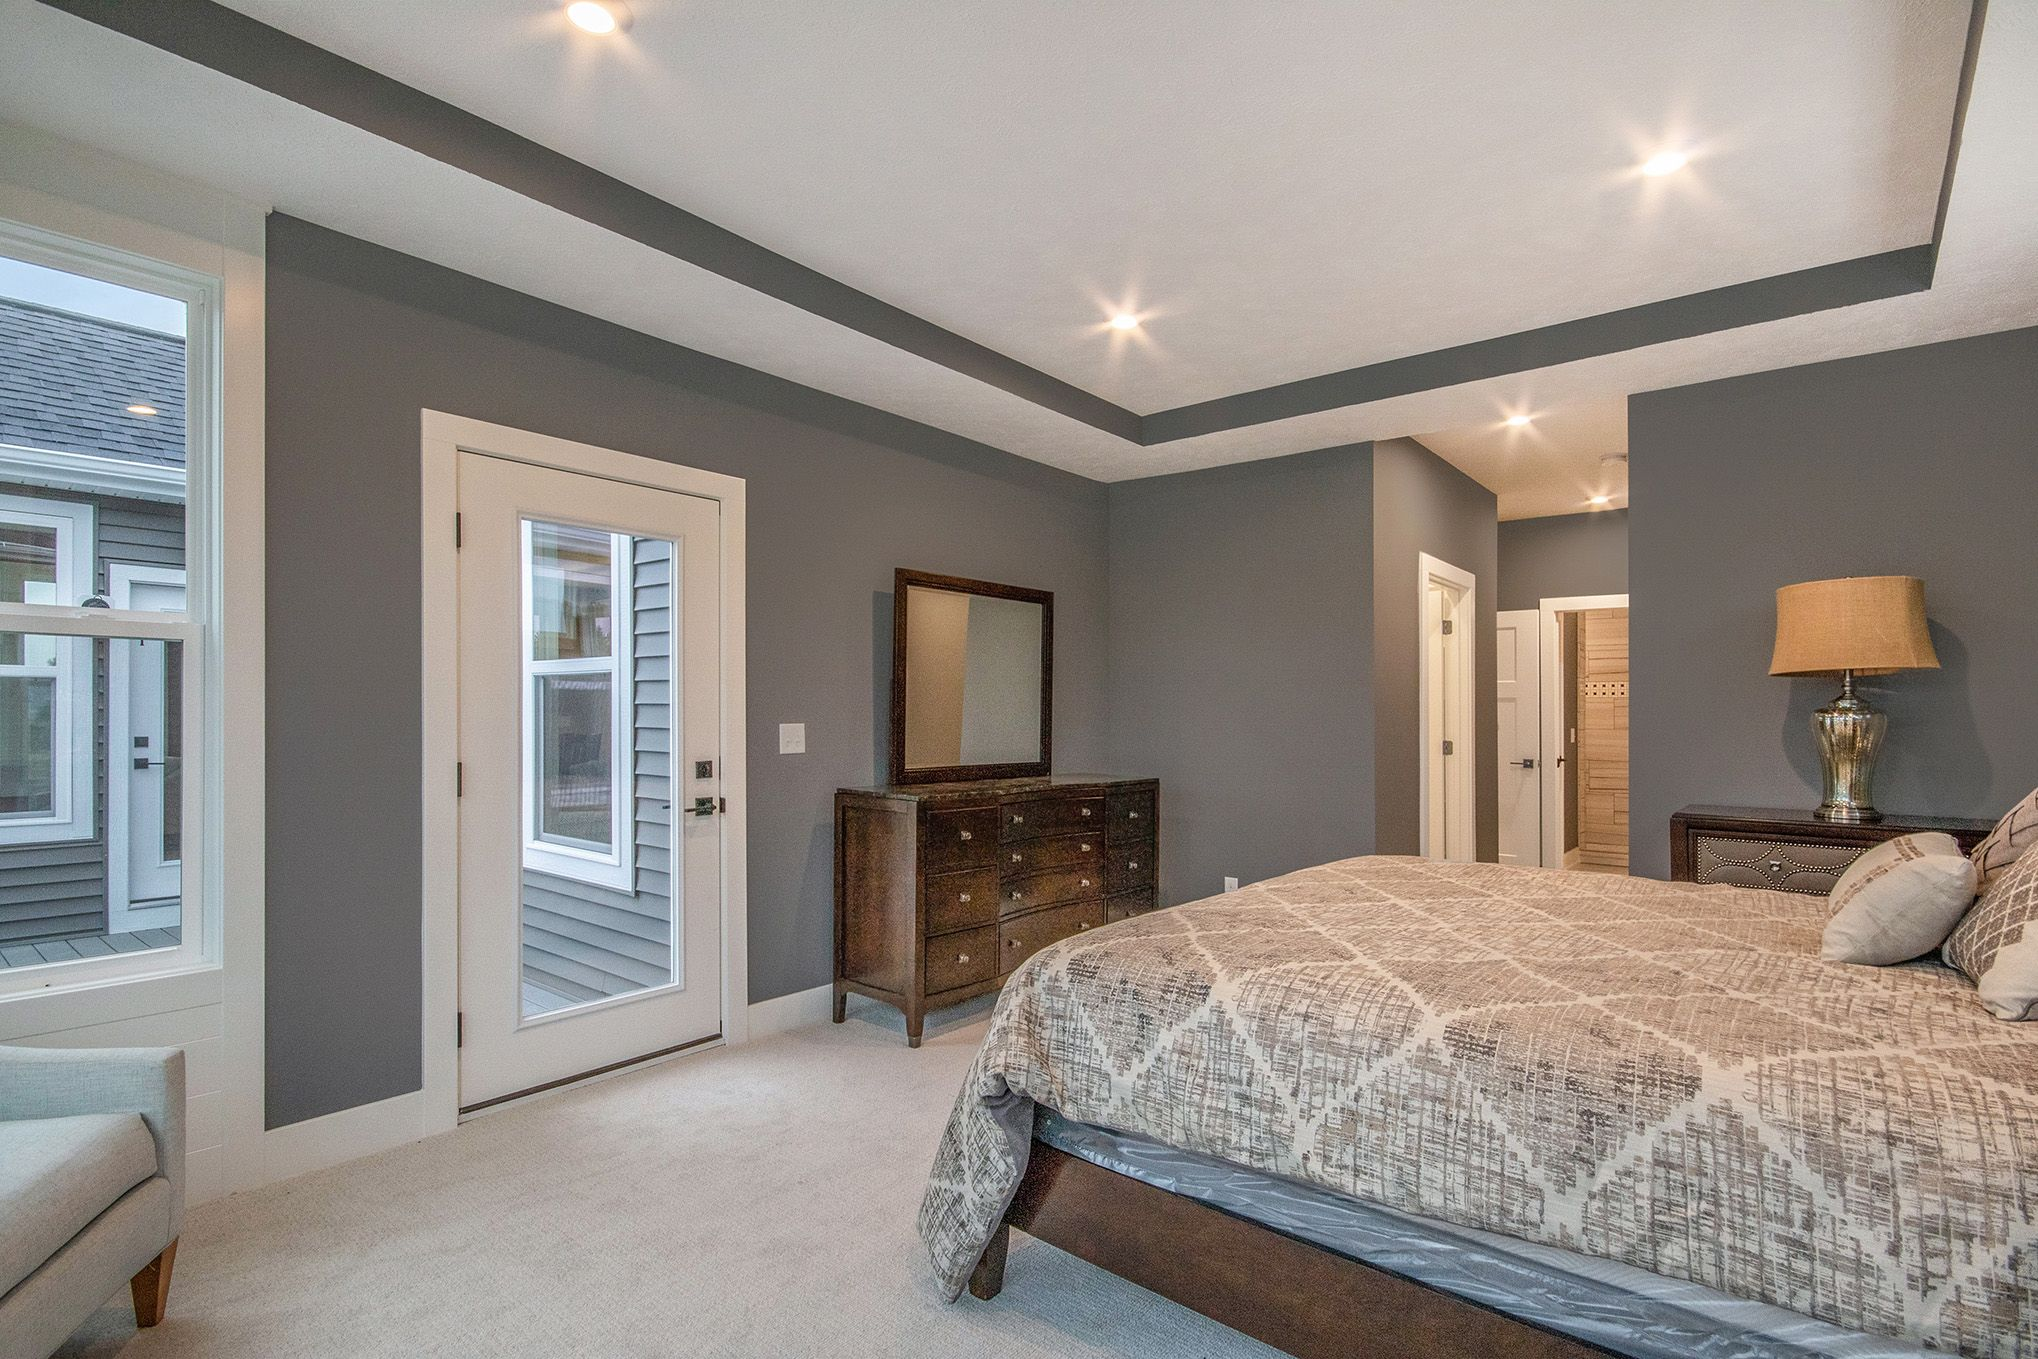 Bedroom featured in The Willow ll By Eastbrook Homes Inc. in Lansing, MI